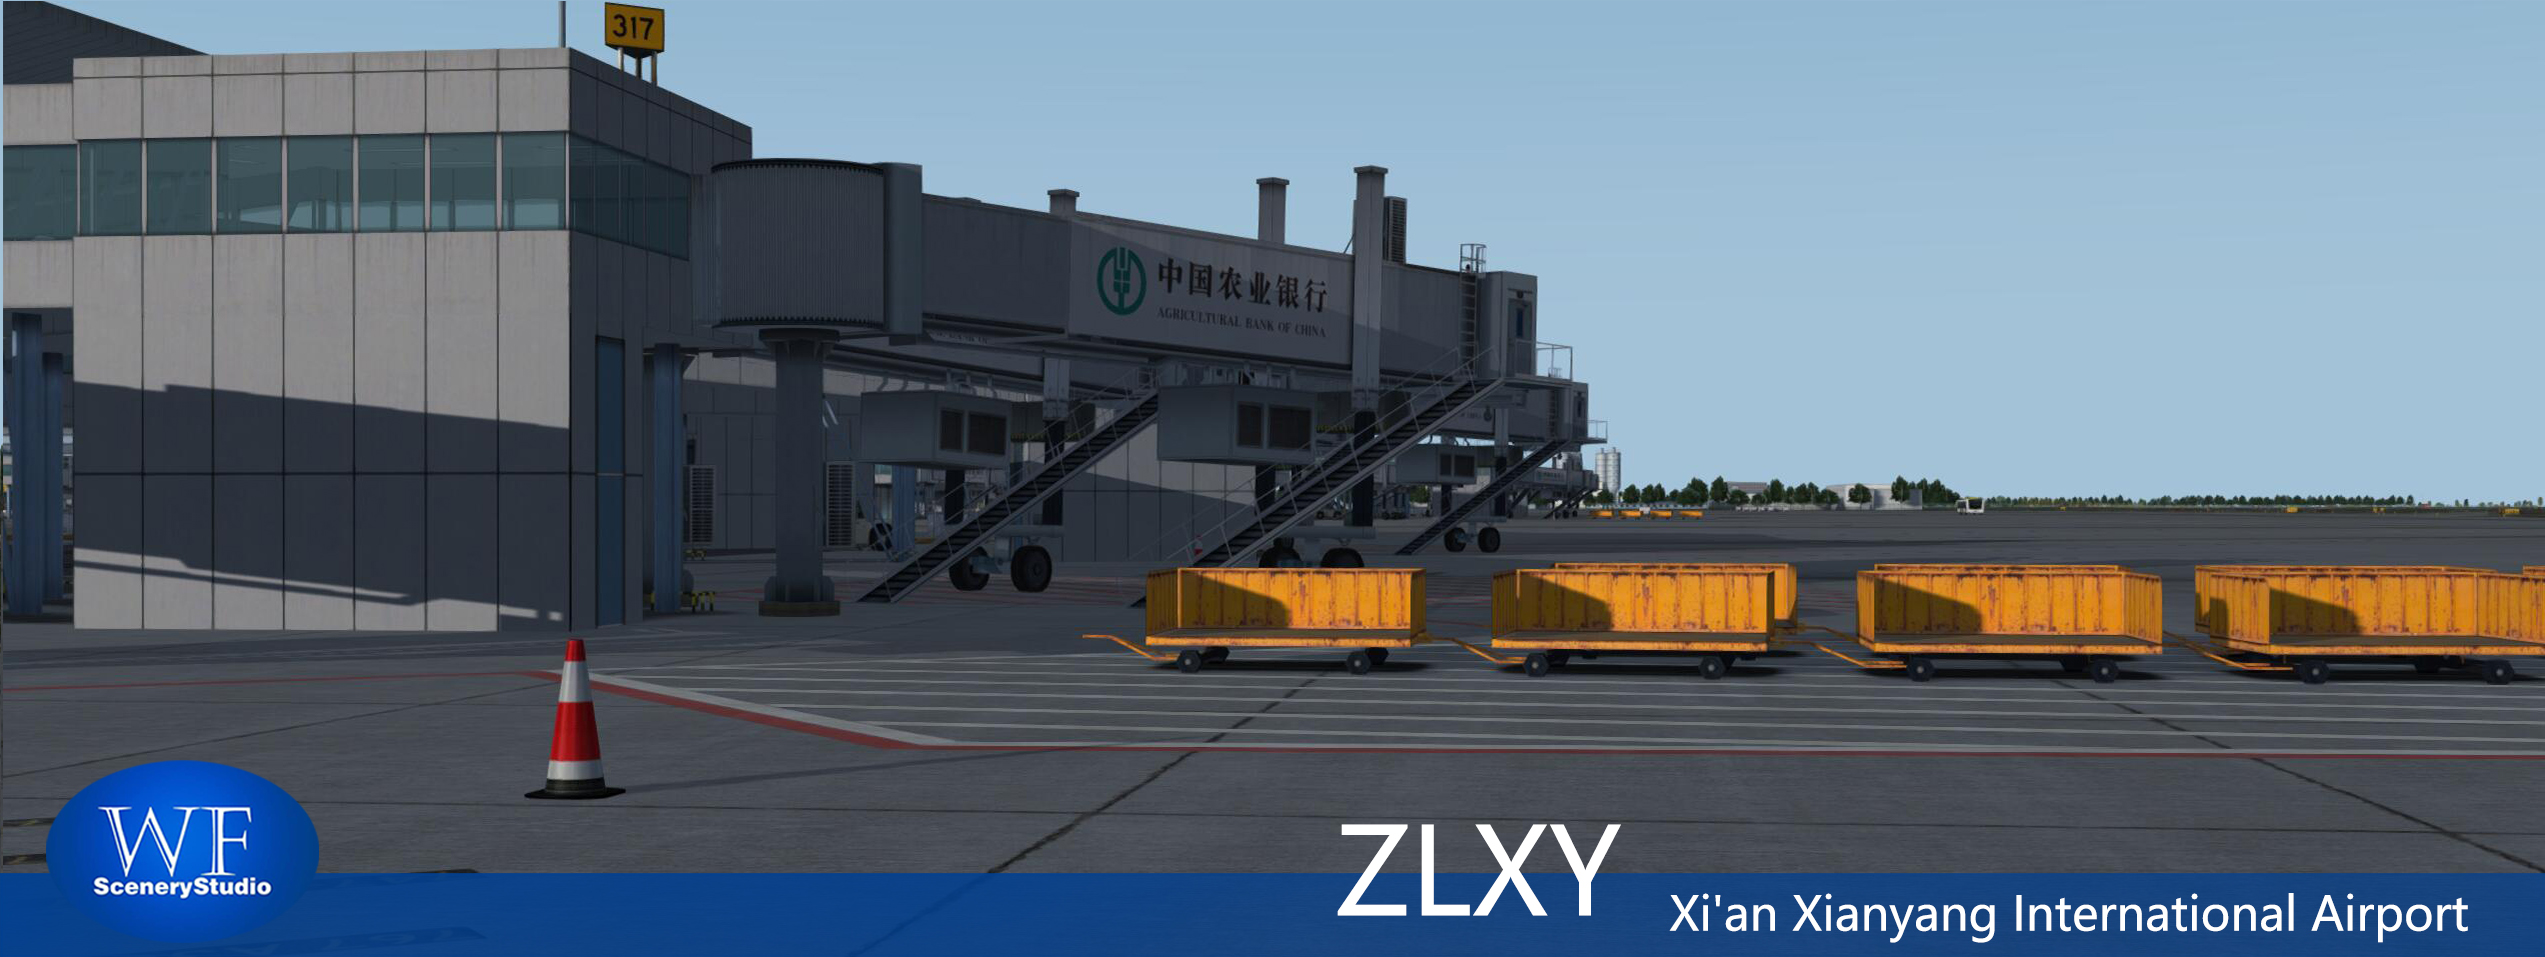 WF SCENERY STUDIO - XI'AN XIANYANG INTERNATIONAL AIRPORT ZLXY P3D4